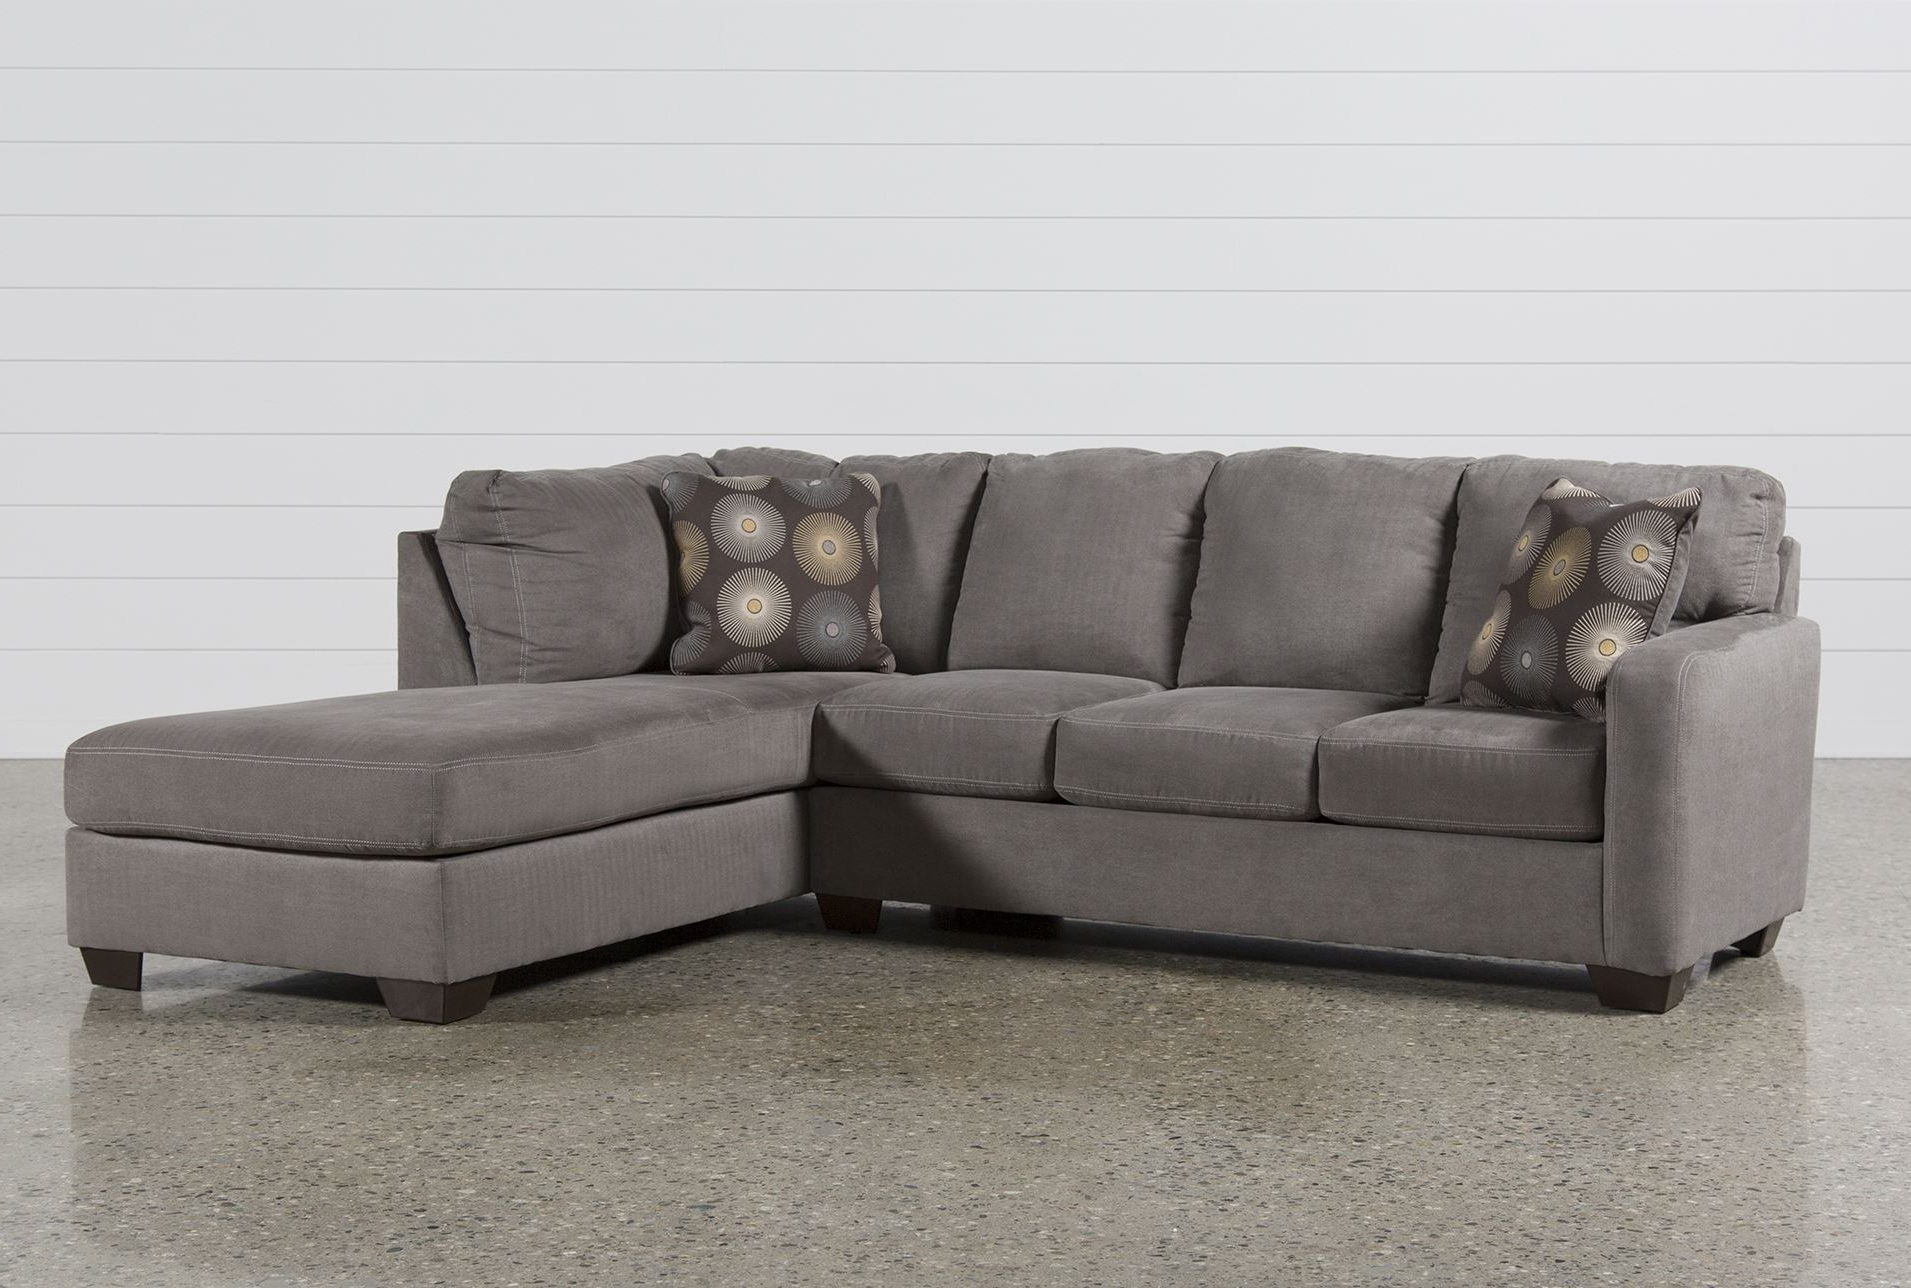 Favorite 4 Piece Sectional Sofas With Chaise Within Sofa ~ Comfy 2 Piece Sectional Sofa 107153 0 2 Piece Sectional (View 6 of 15)